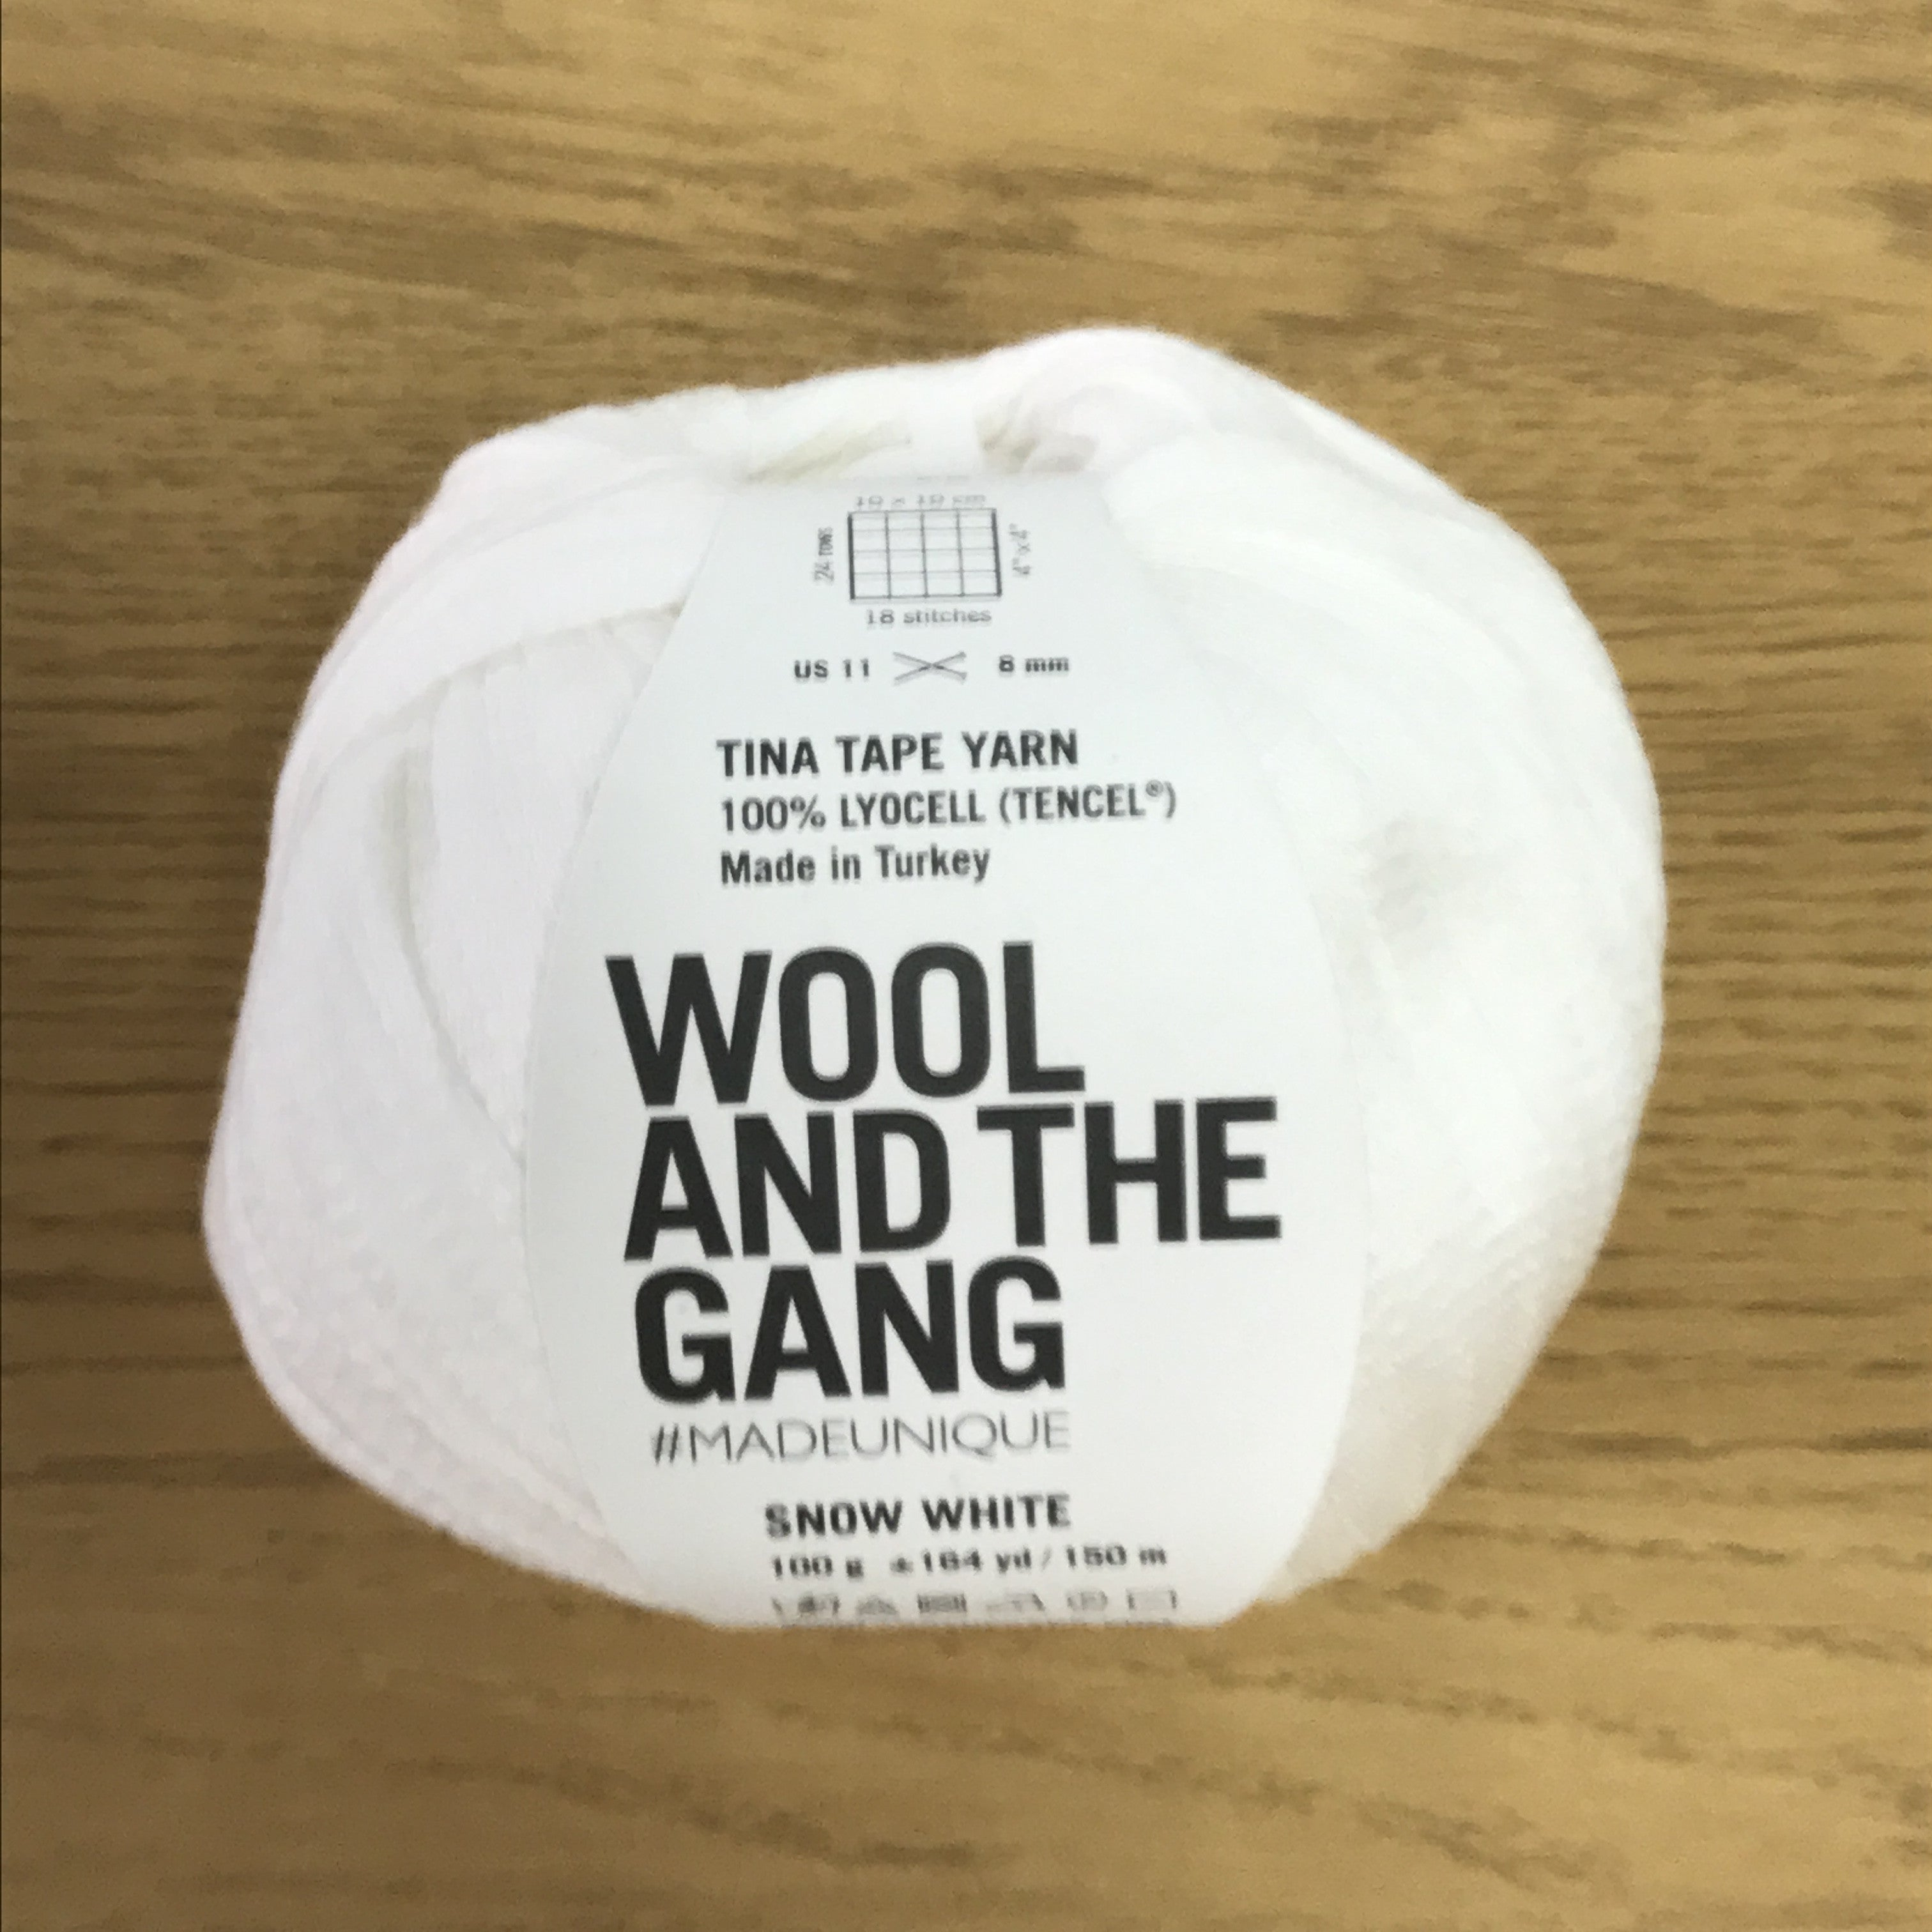 Tina Tape yarn is new from Wool and the Gang! Tencel is sourced from eucalyptus trees, vegan, and good for the environment. Softer than silk and light as air! Snow White